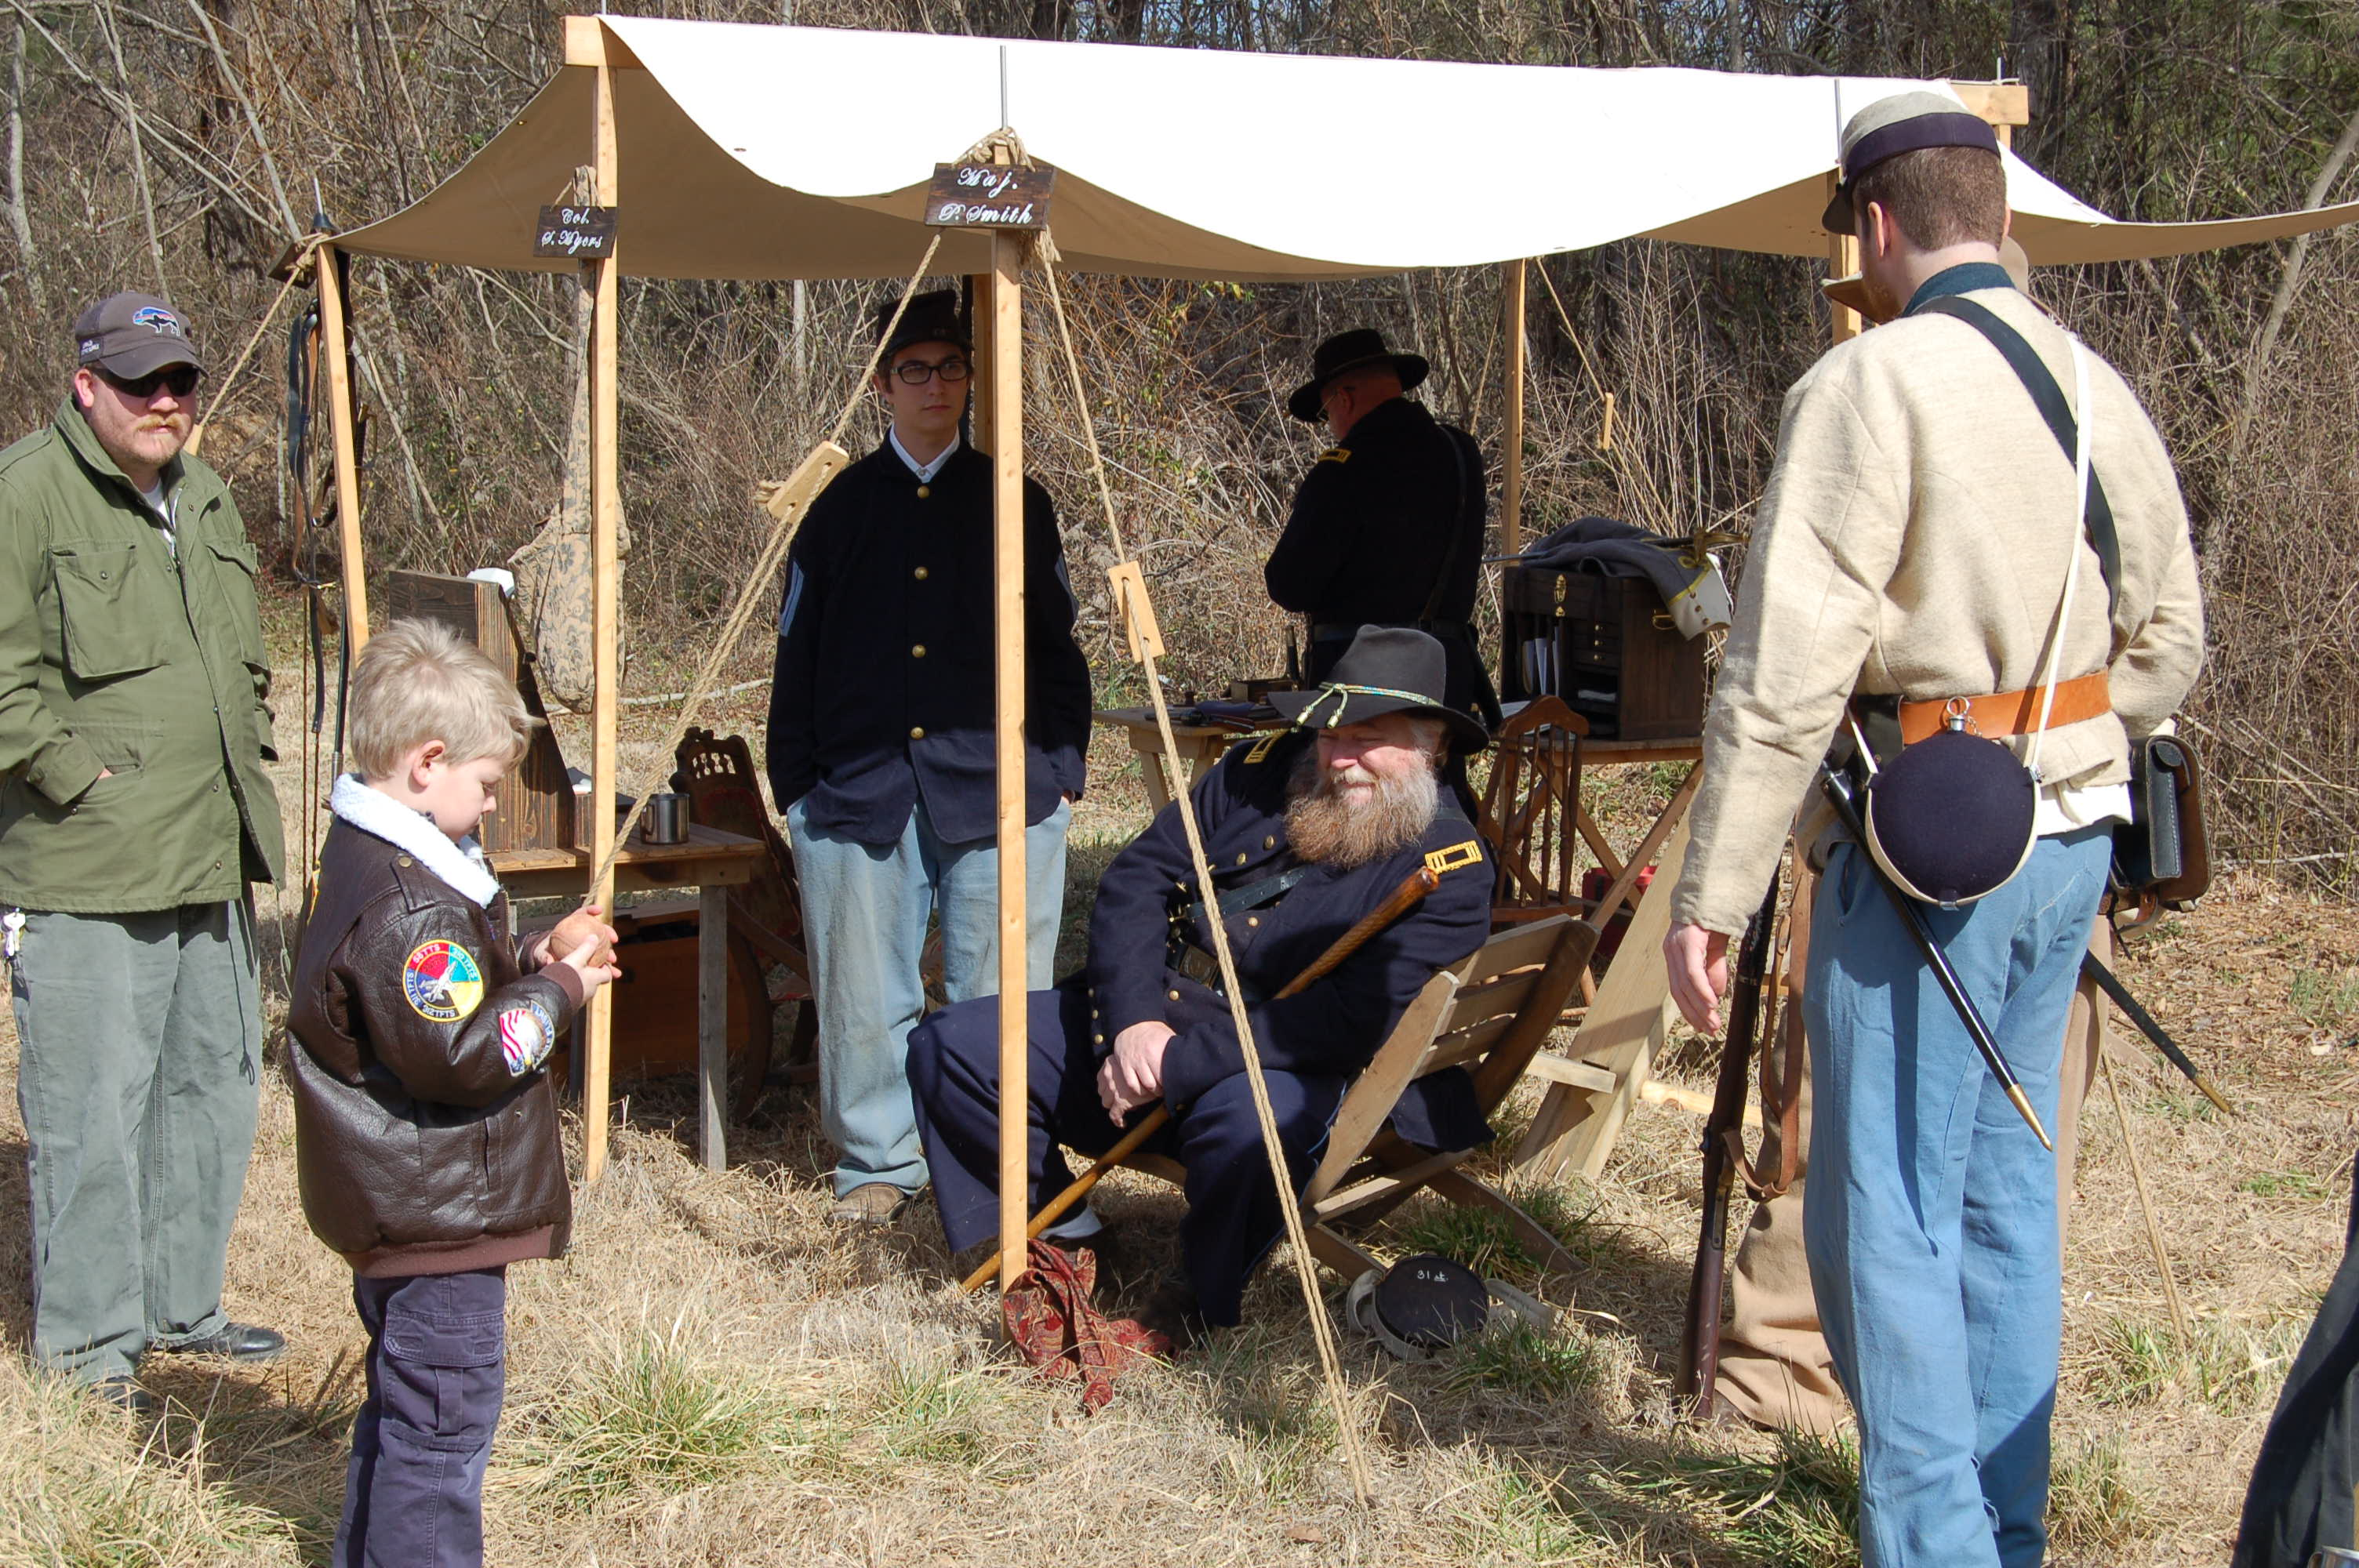 Watch history be remade this Saturday at the Old South Firearms and Trading Post